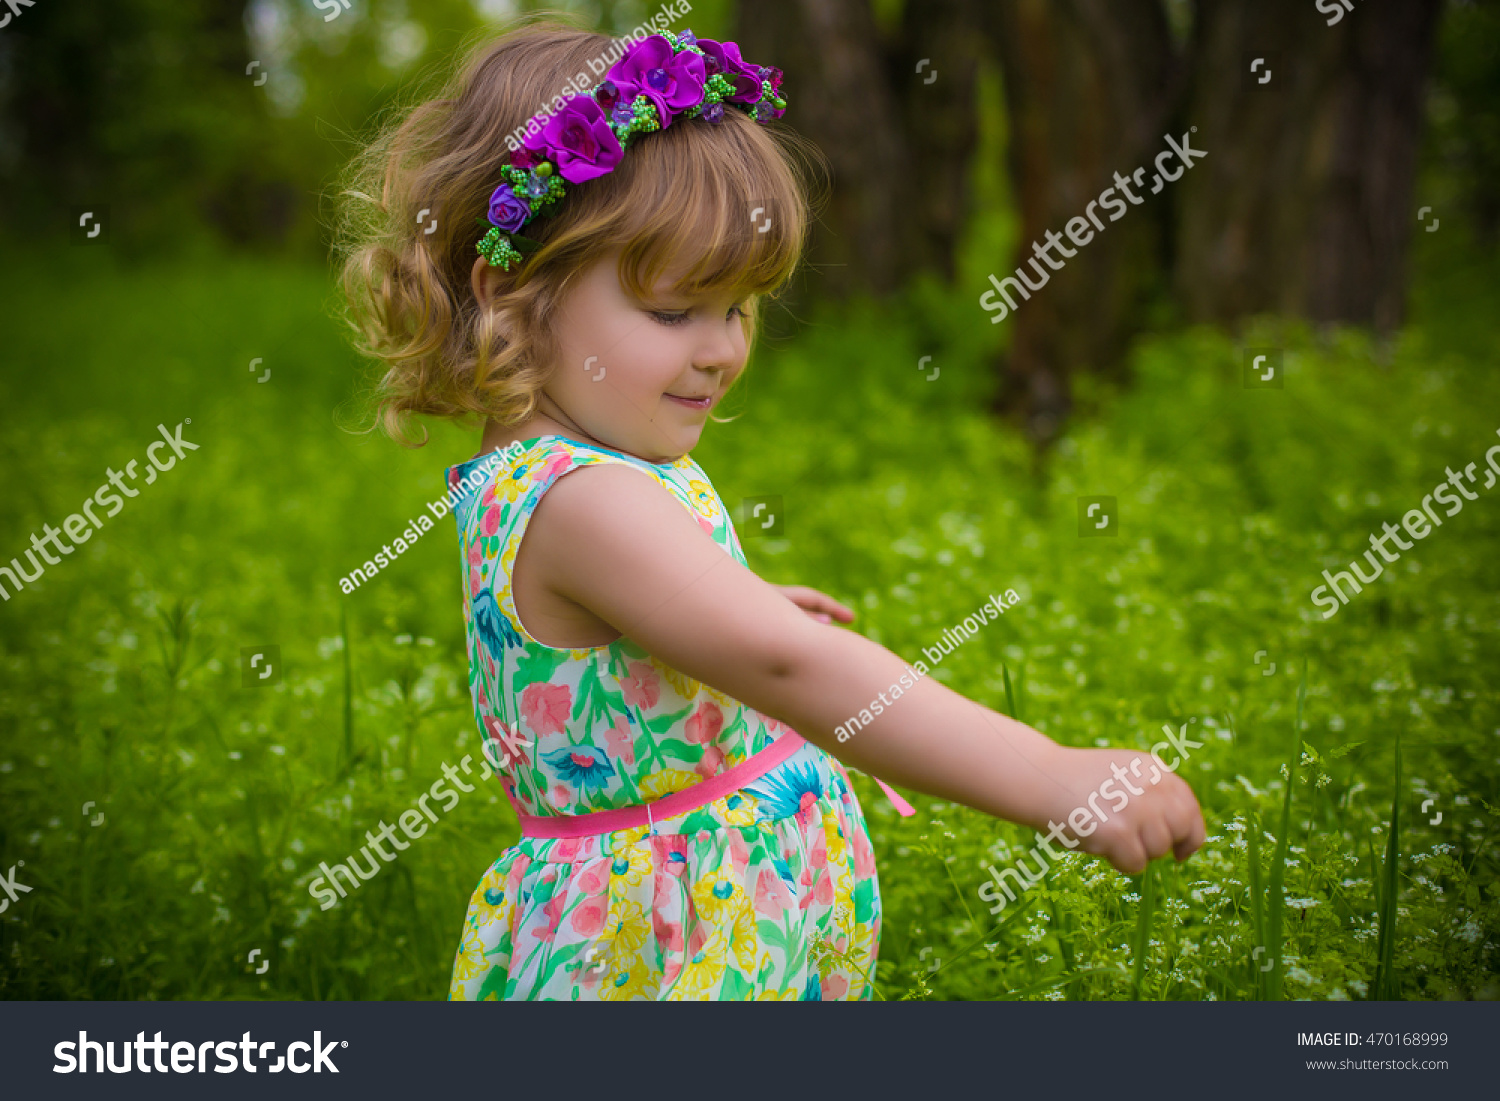 cute adorable baby girl nice flower stock photo (edit now) 470168999